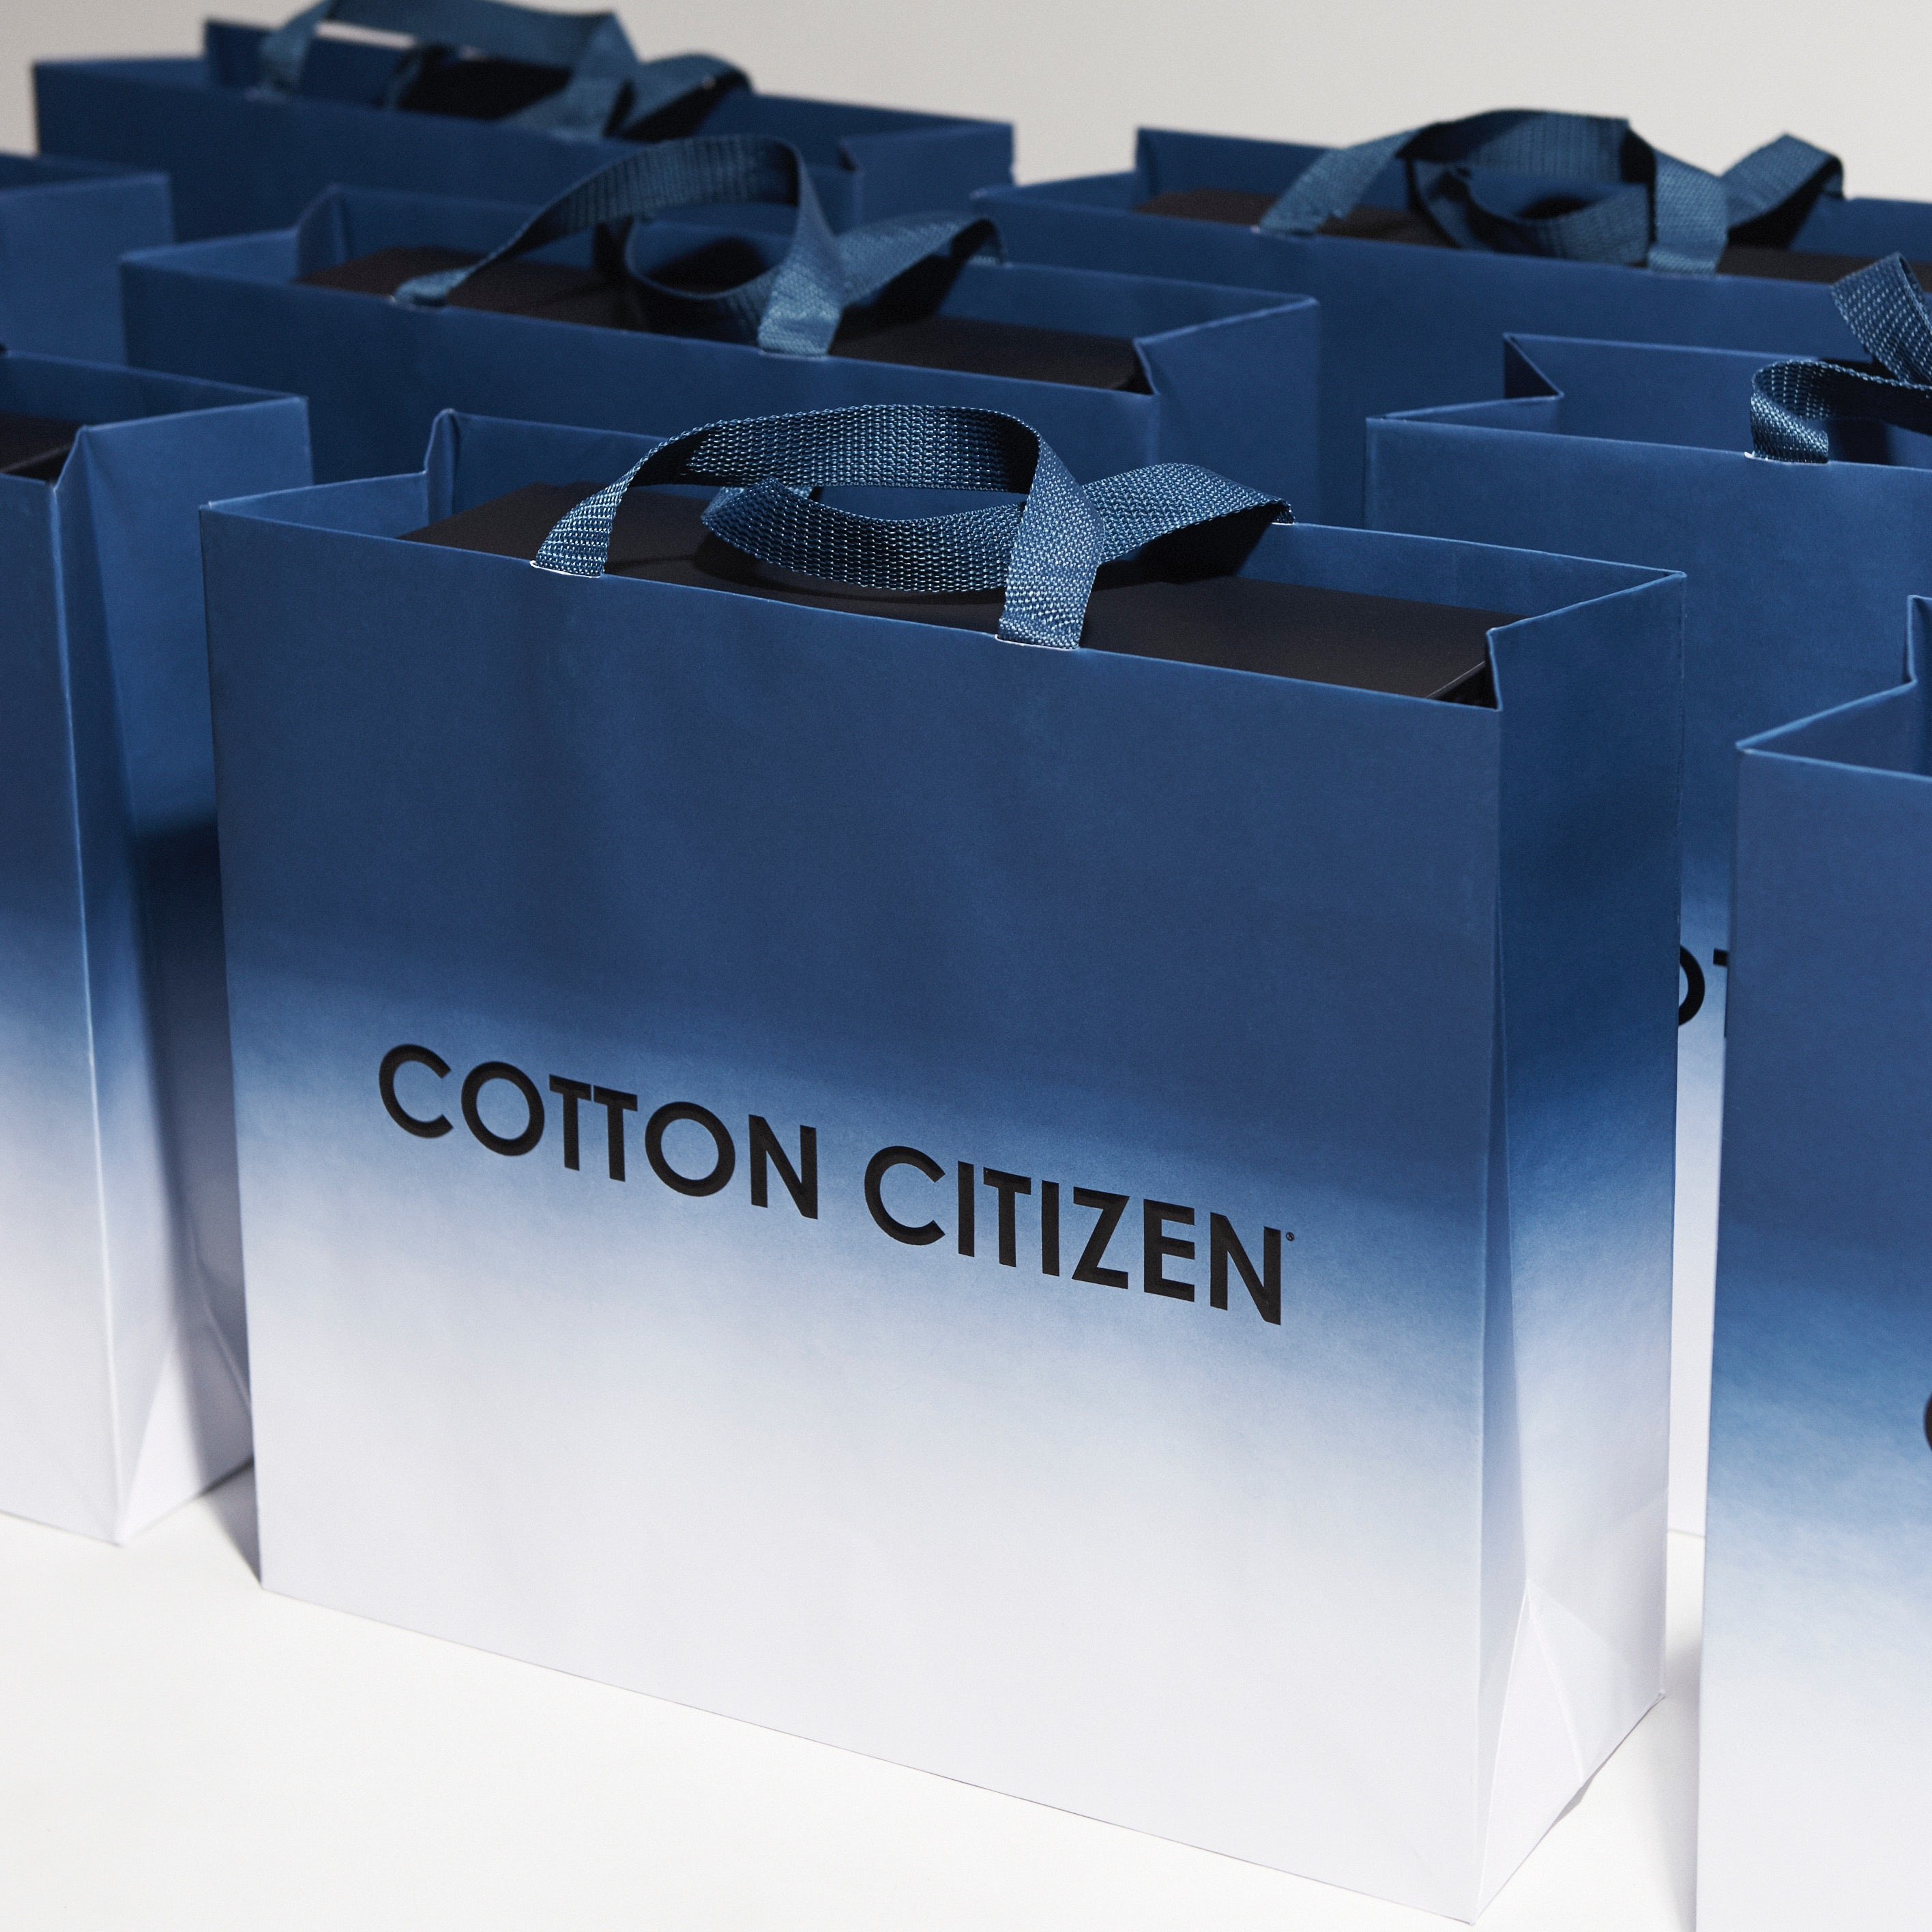 Cotton Citizen company logo